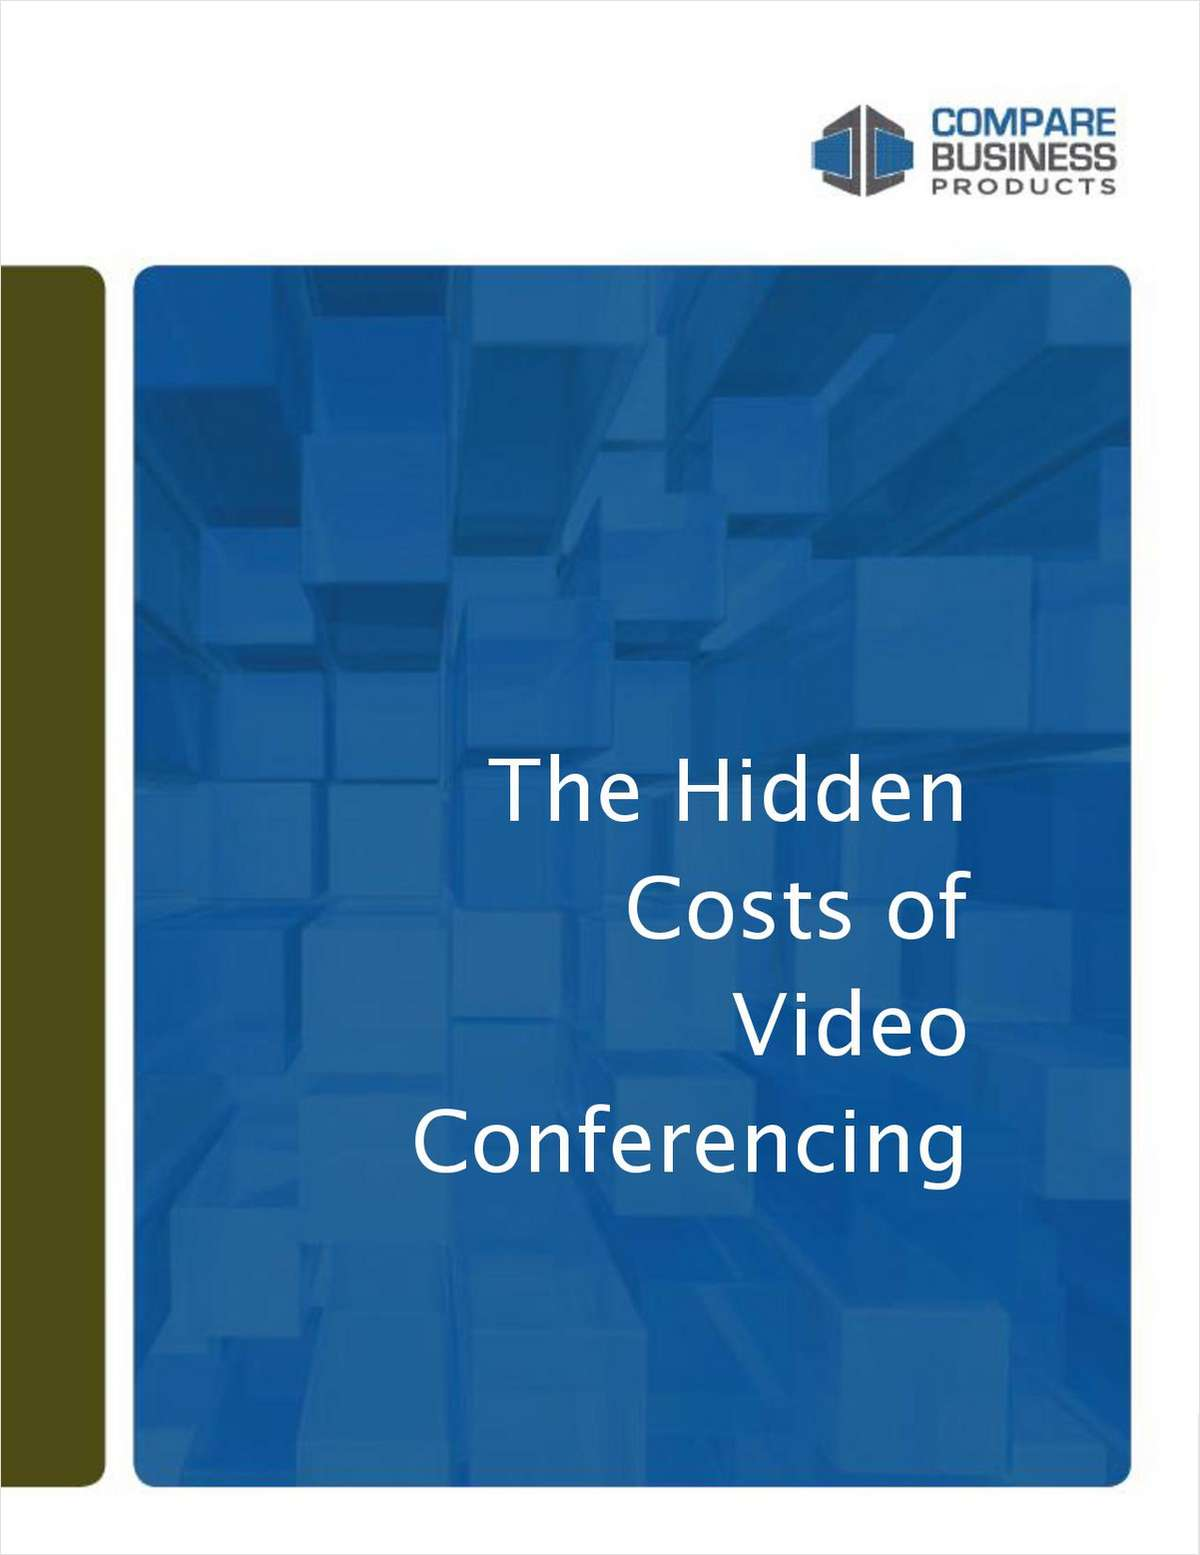 The Hidden Costs of Video Conferencing